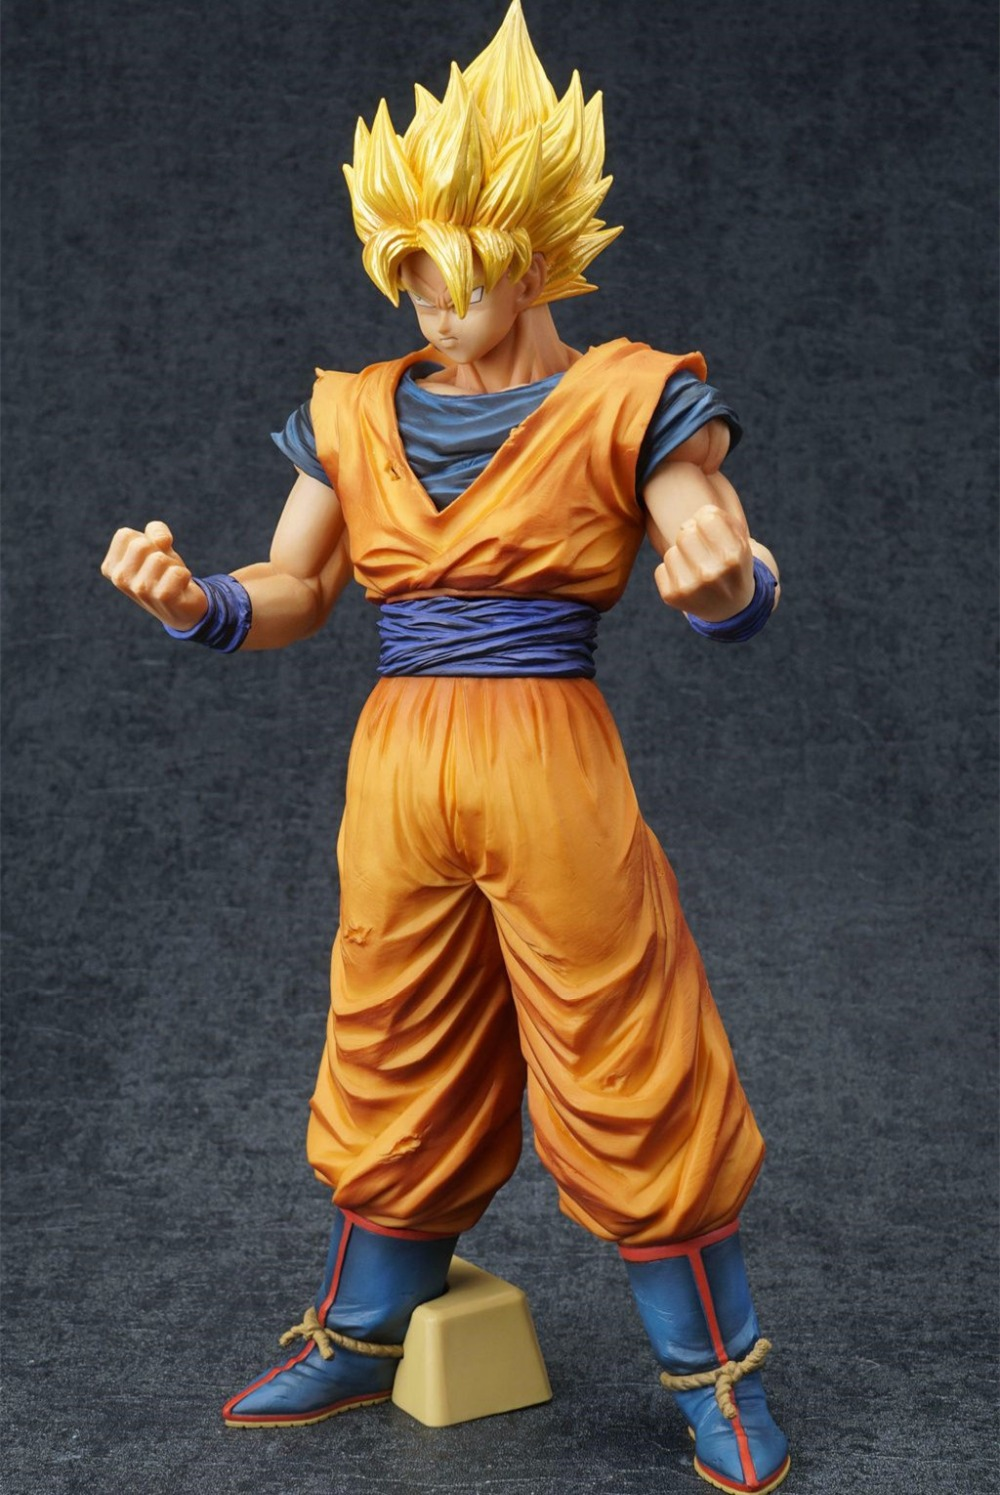 Anime Dragon Ball Z ROS Son Goku PVC Action Figure Collectible Model Kids Toys Doll 32CM Large Size Figure Toy arale figure anime cartoon dr slump pvc action figure collectible model toy children kids gift 6 types